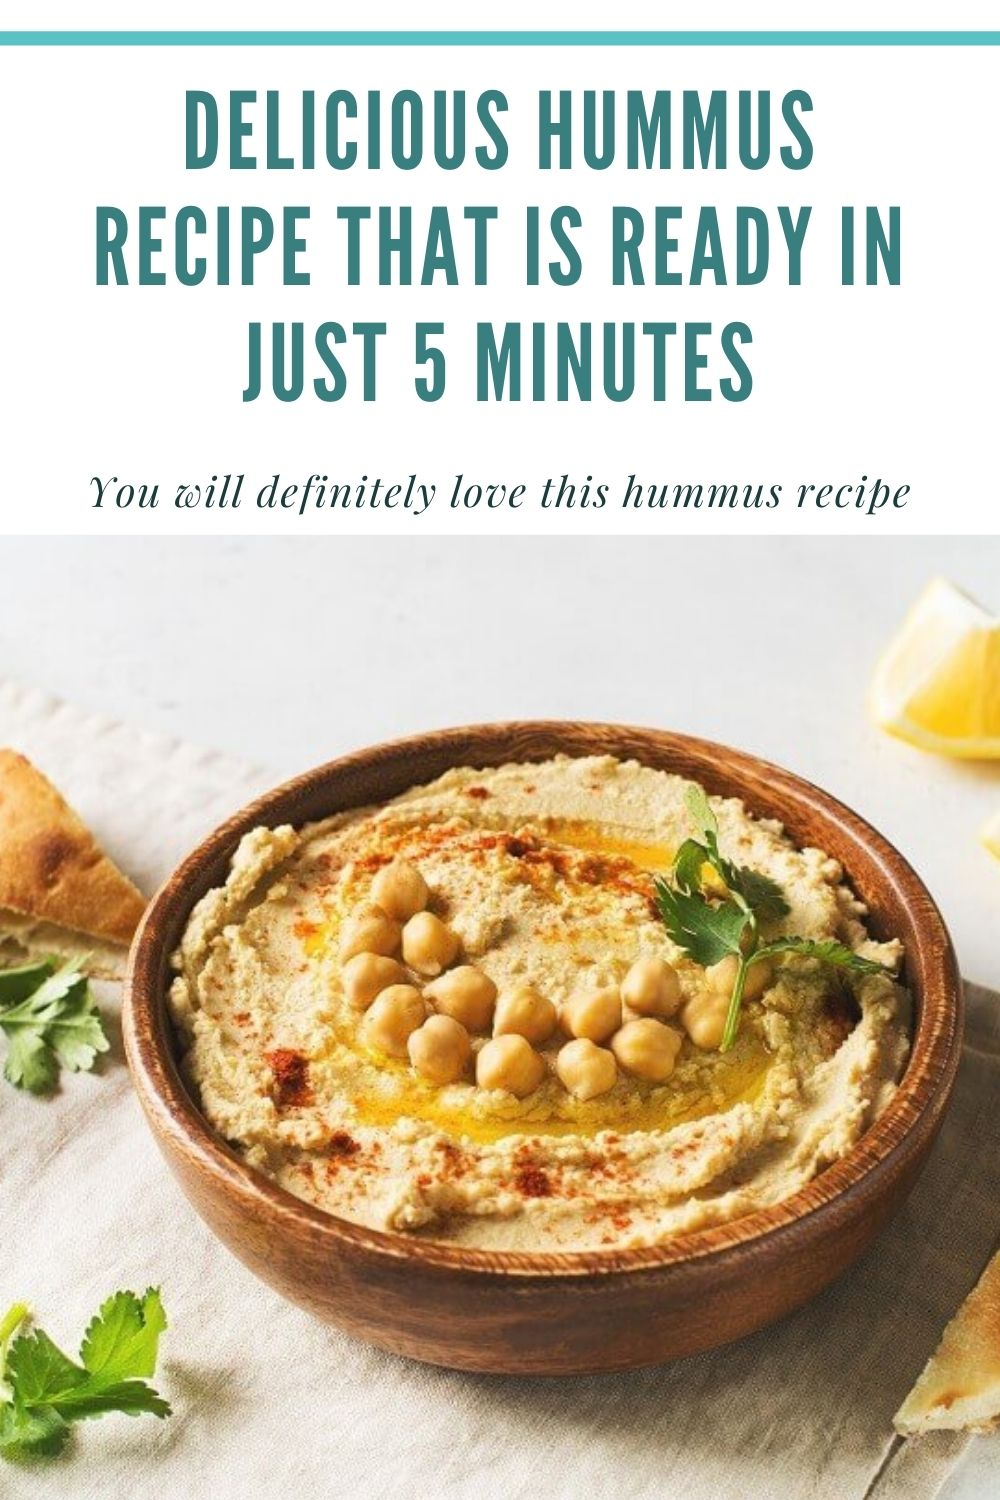 A delicious hummus recipe that is ready in just 5 minutes